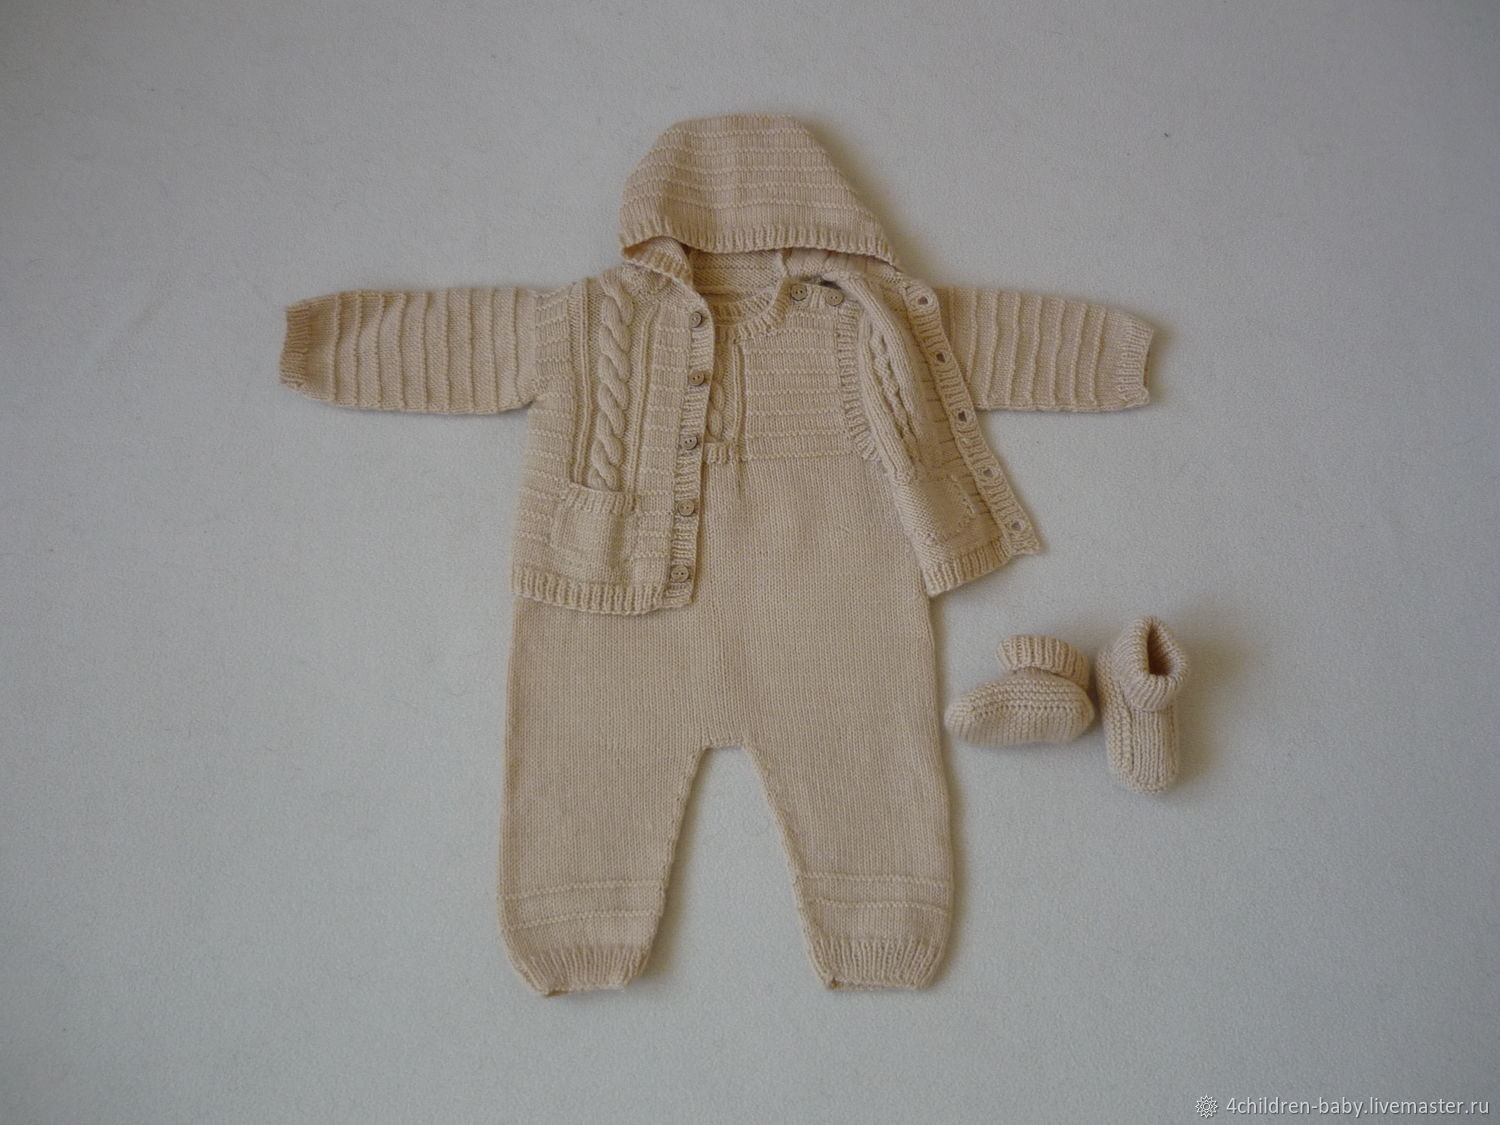 Hand knitted kit for boy, Baby Clothing Sets, Moscow,  Фото №1